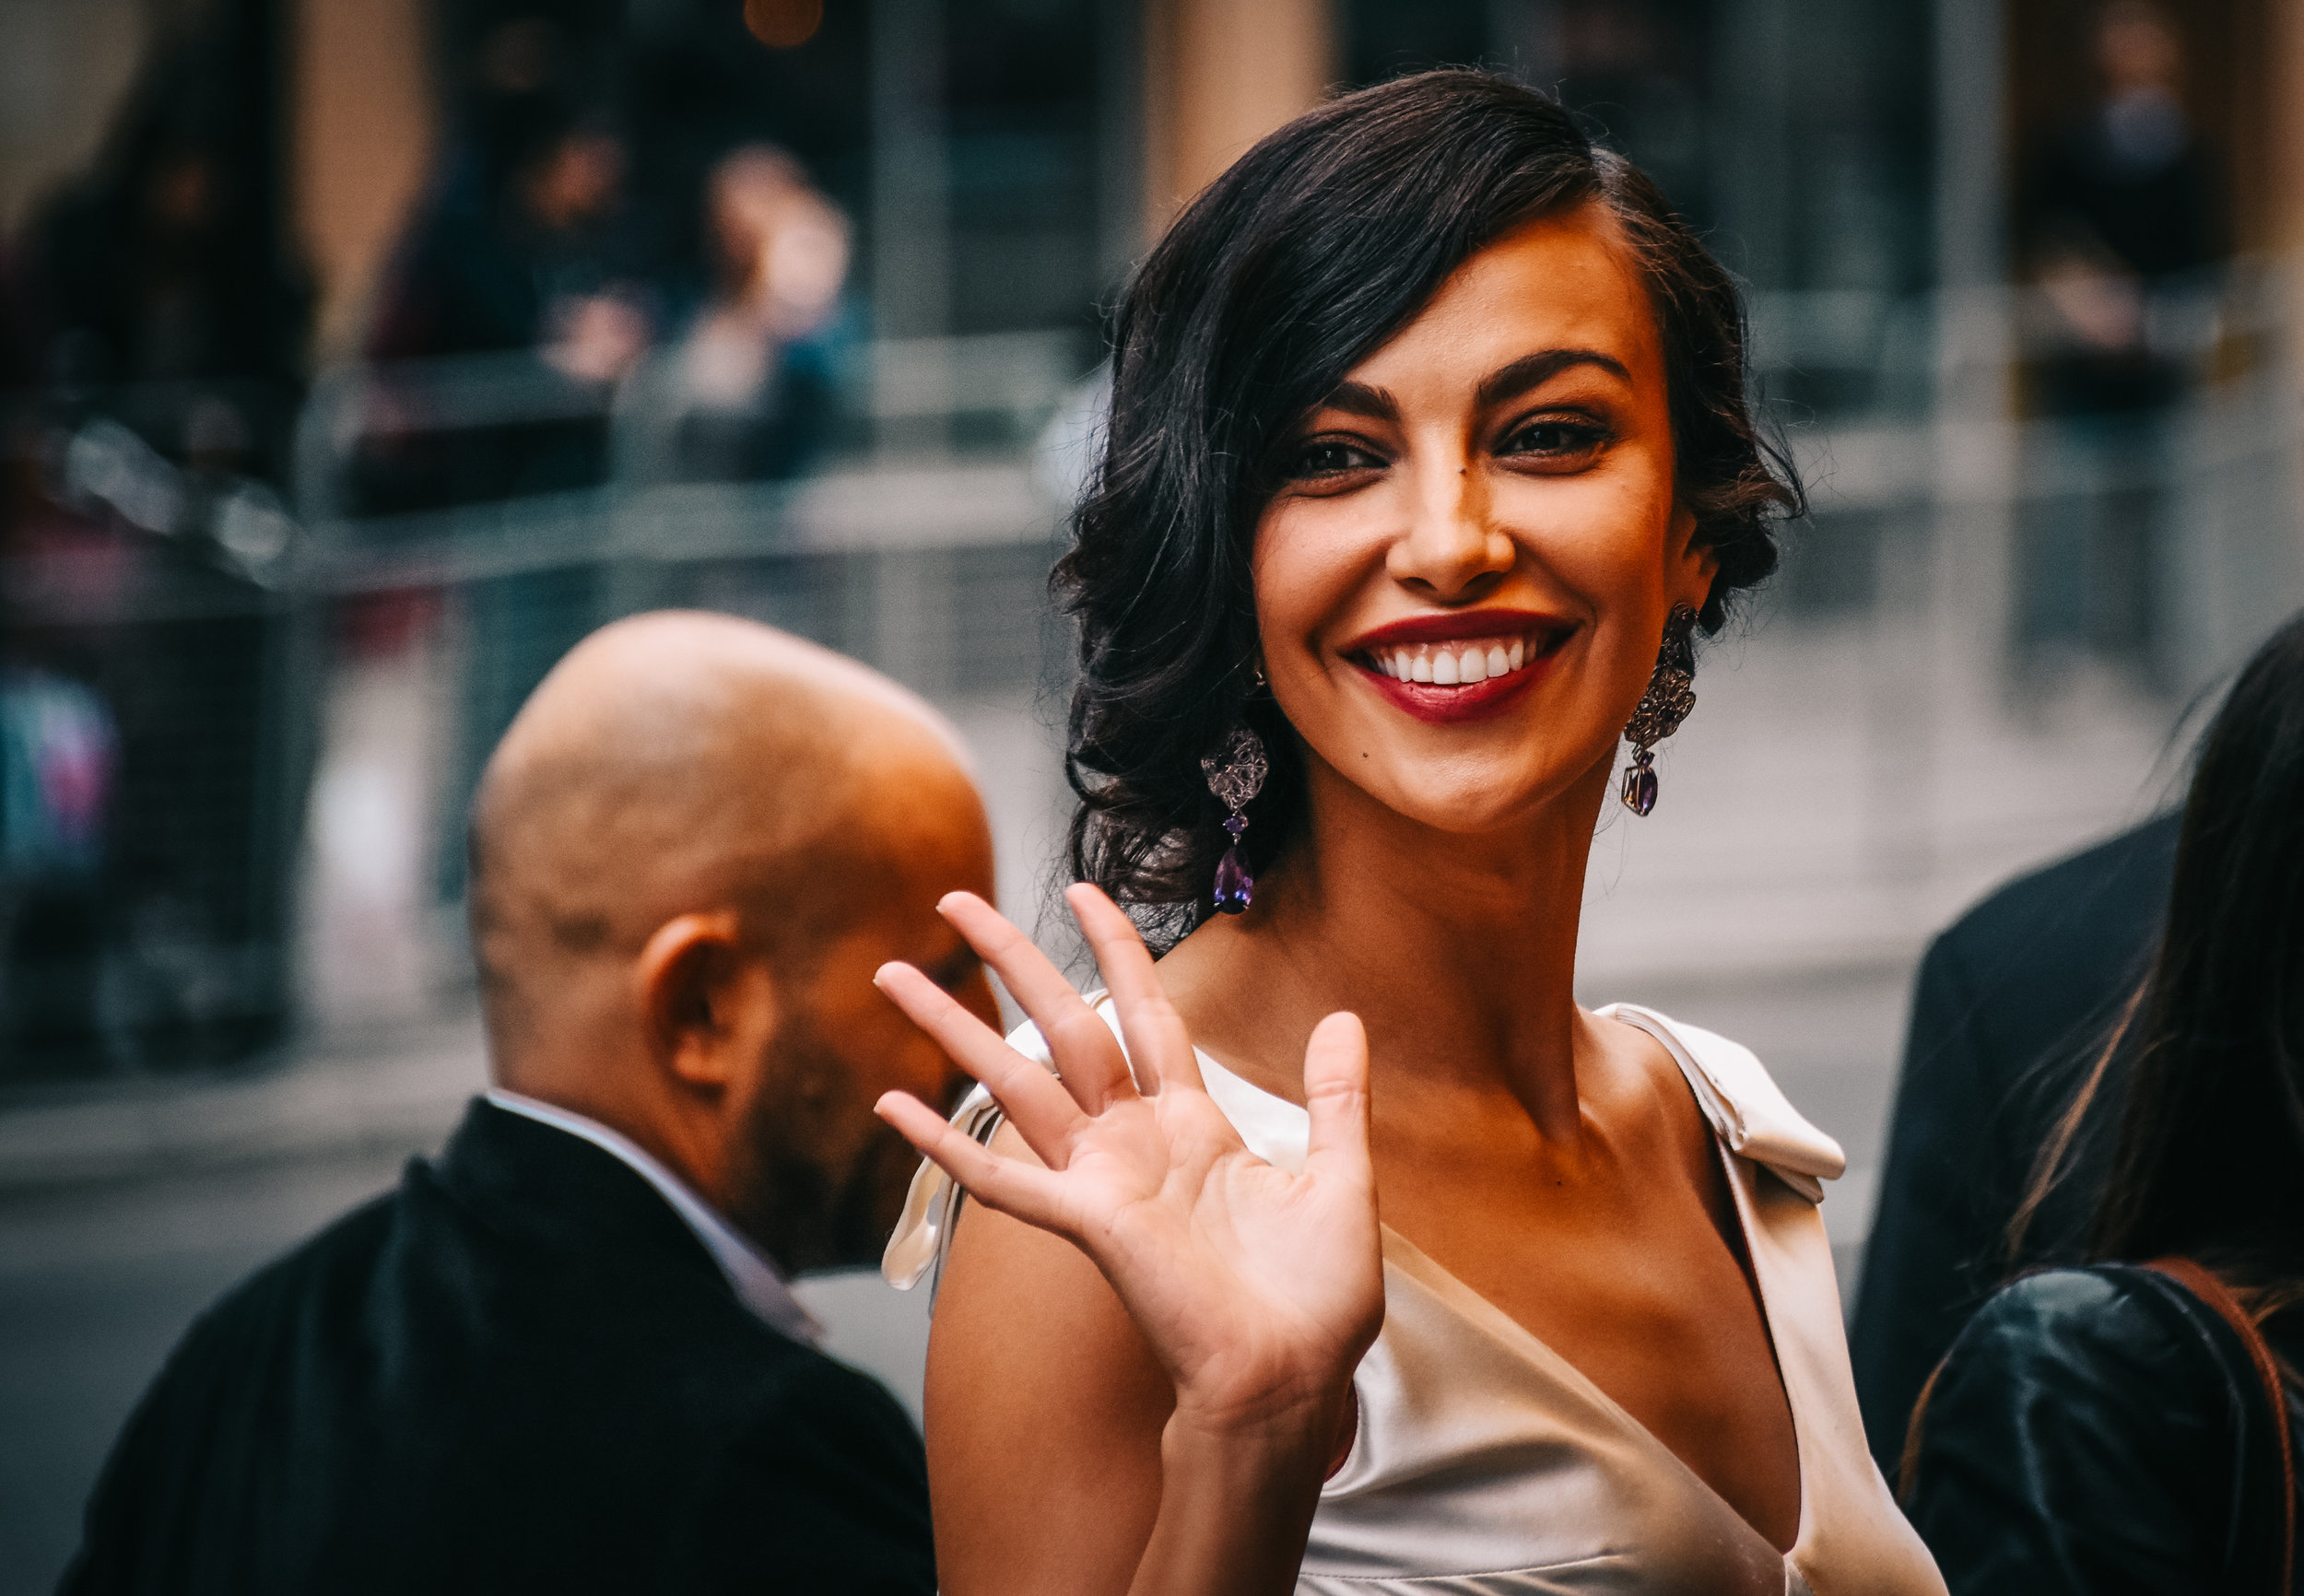 Romanian model and actress Mădălina Ghenea on Yonge Street.